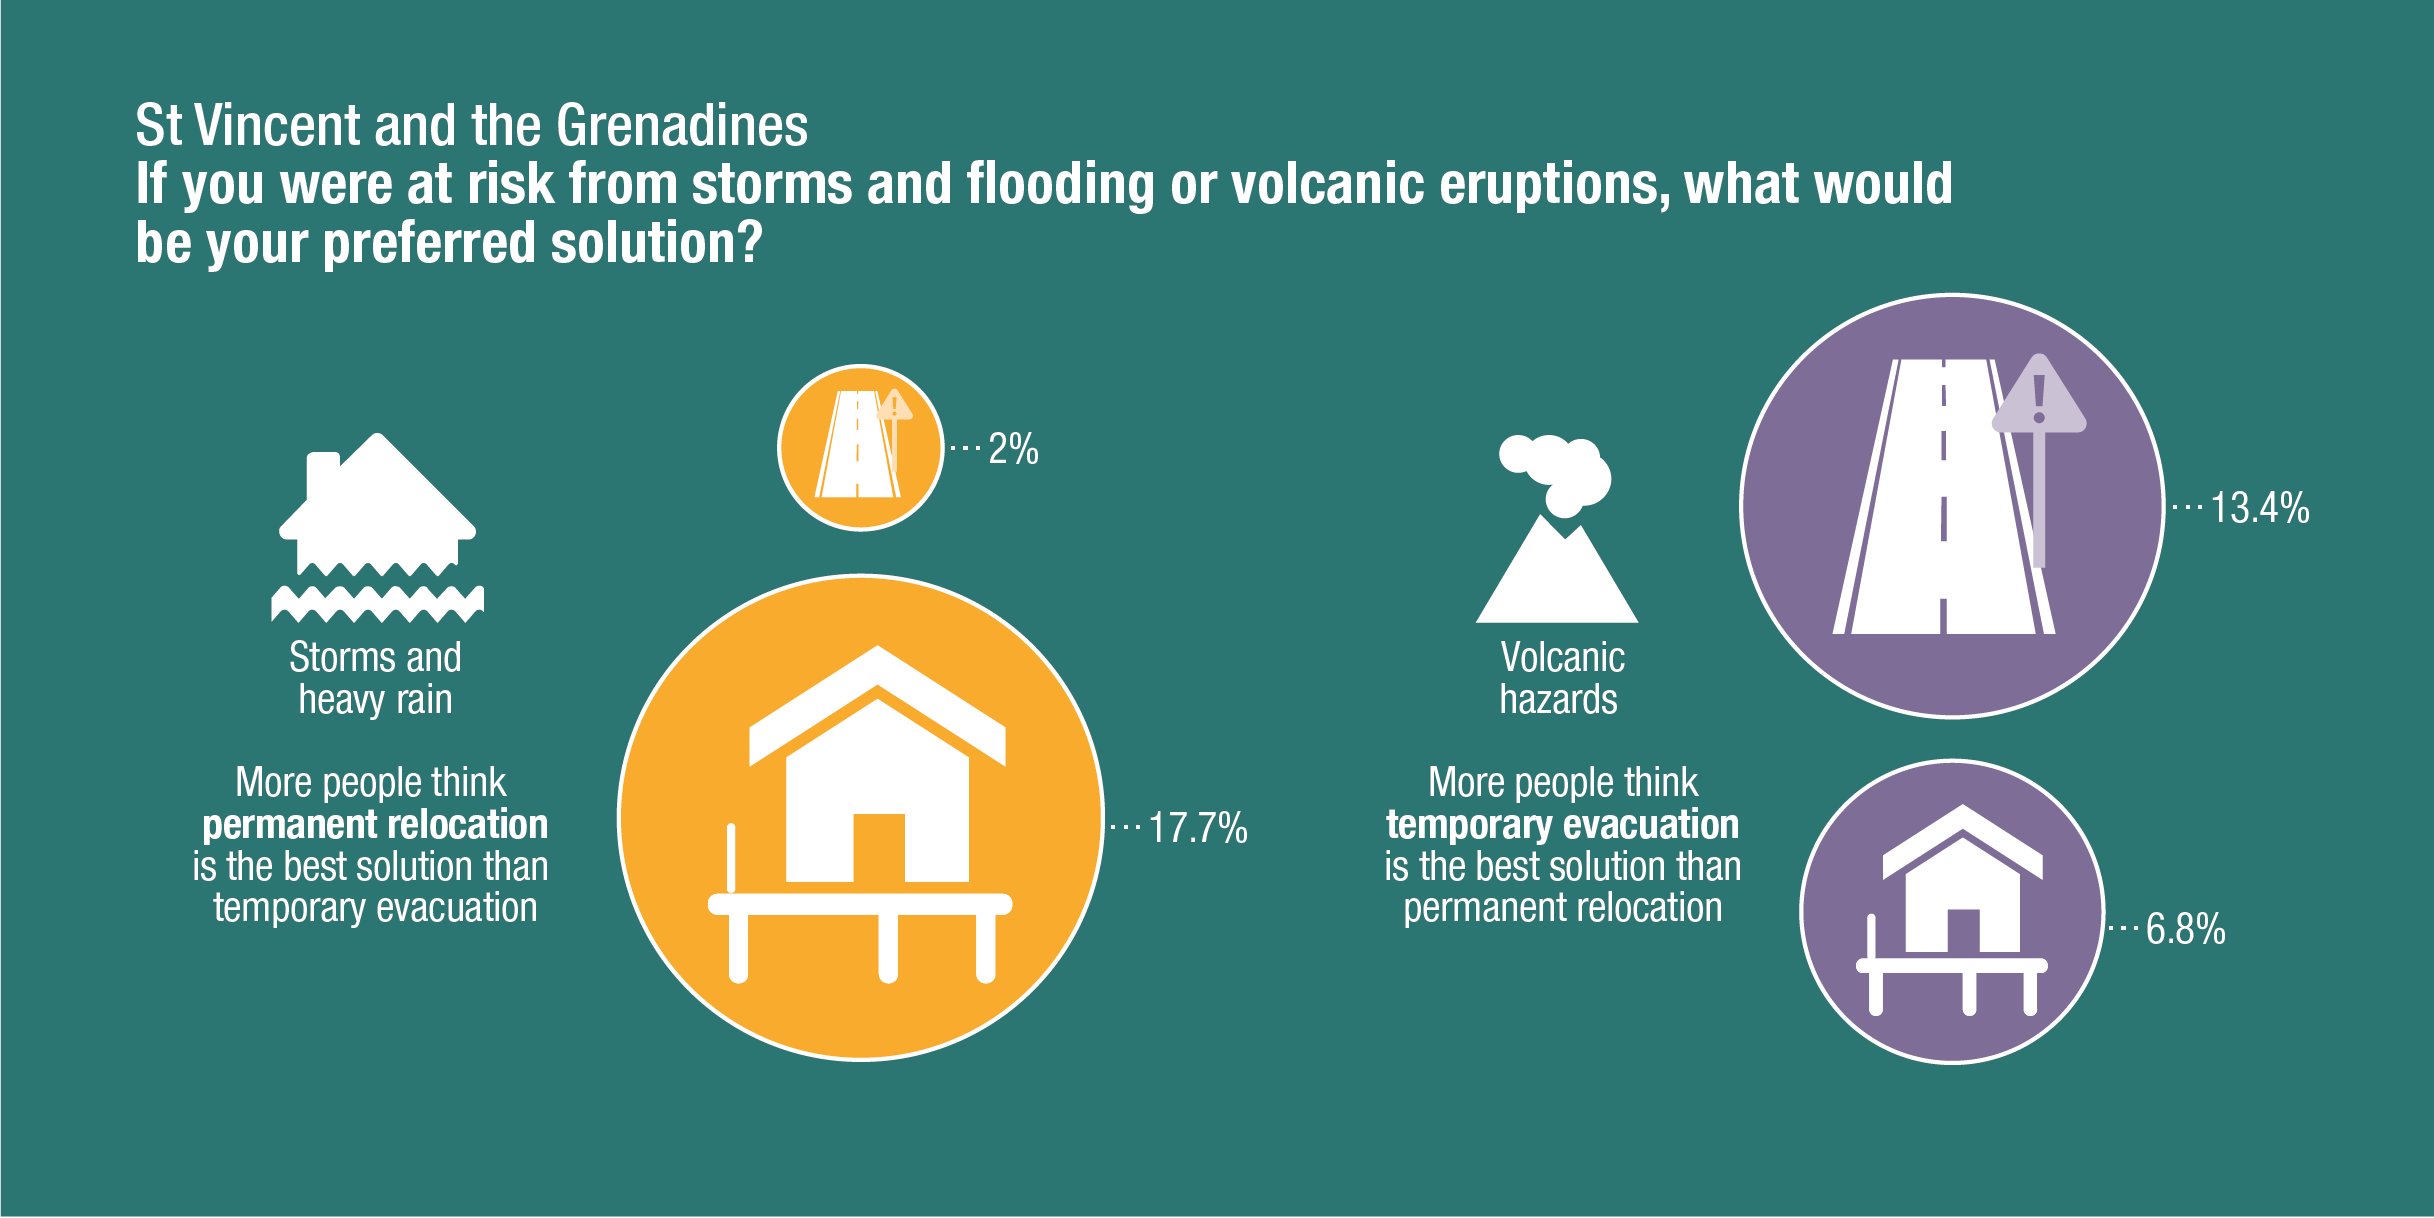 St Vincent and the Grenadines survey results: If you were at risk from storms and flooding or volcanic eruptions, what would be your preferred solution? ODI, 2016. CC-BY-NC 4.0.